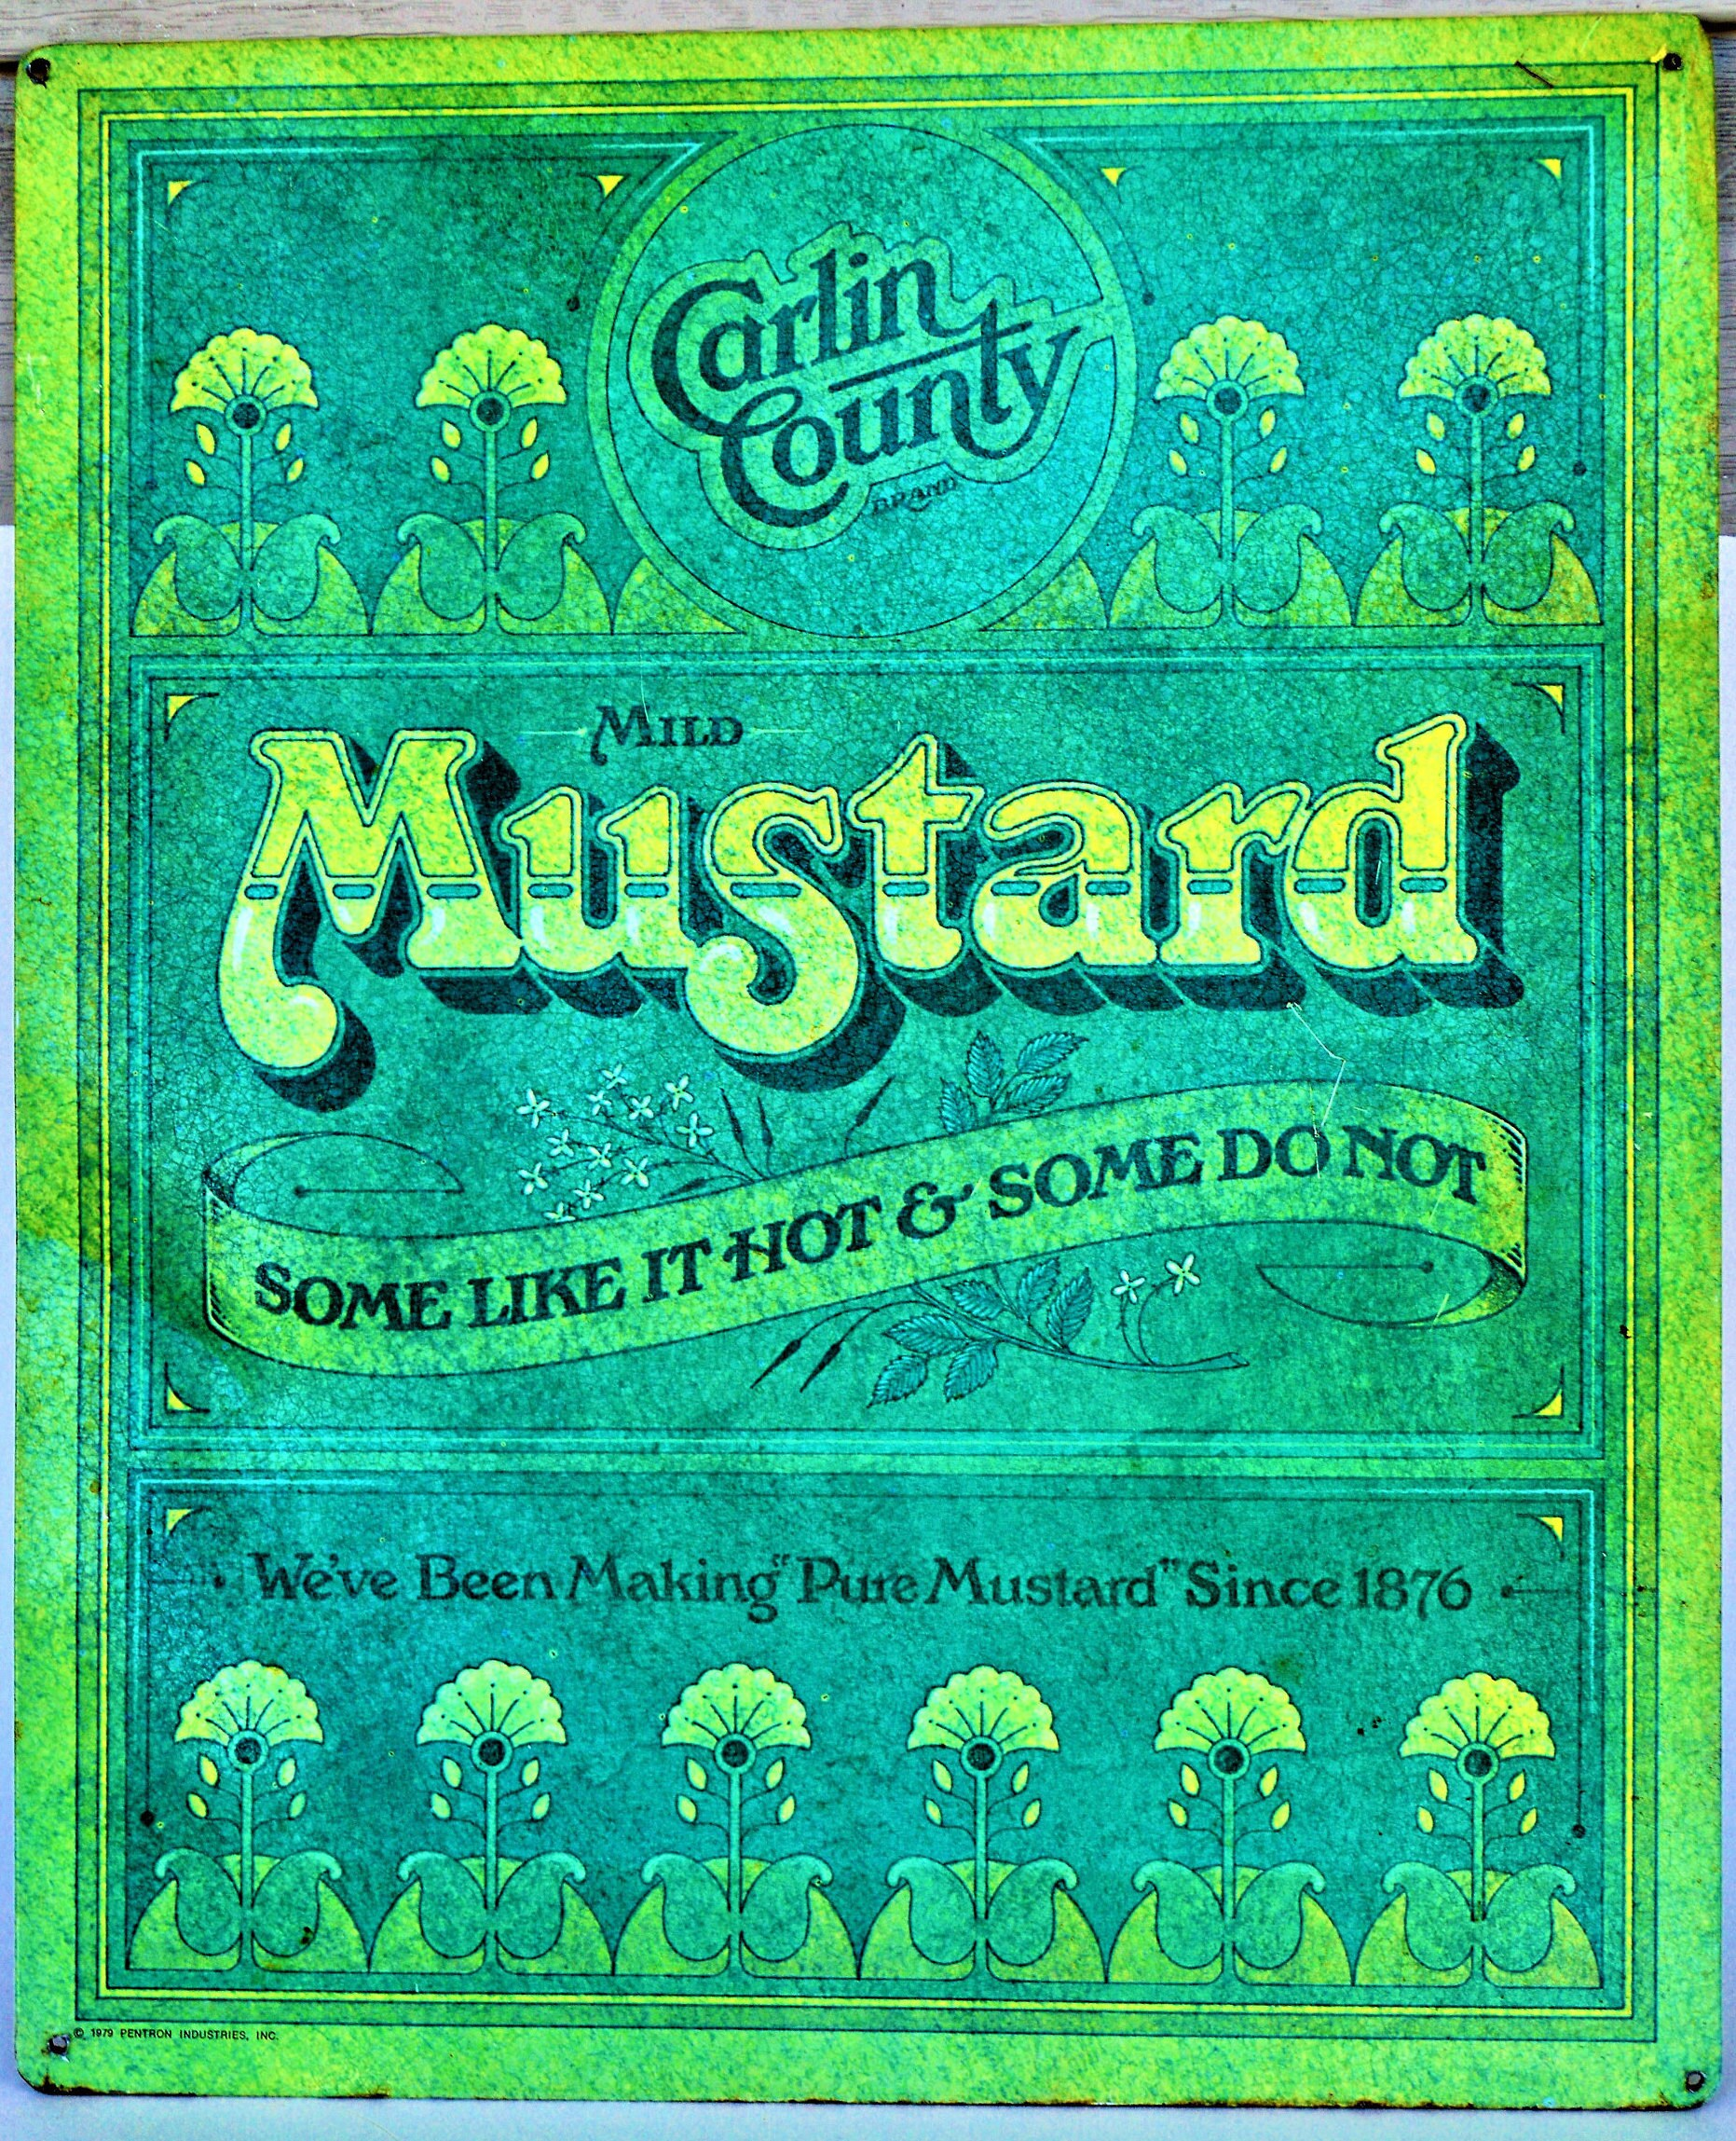 Vintage Carlin County Mild Mustard Stove and Counter Mat Sign